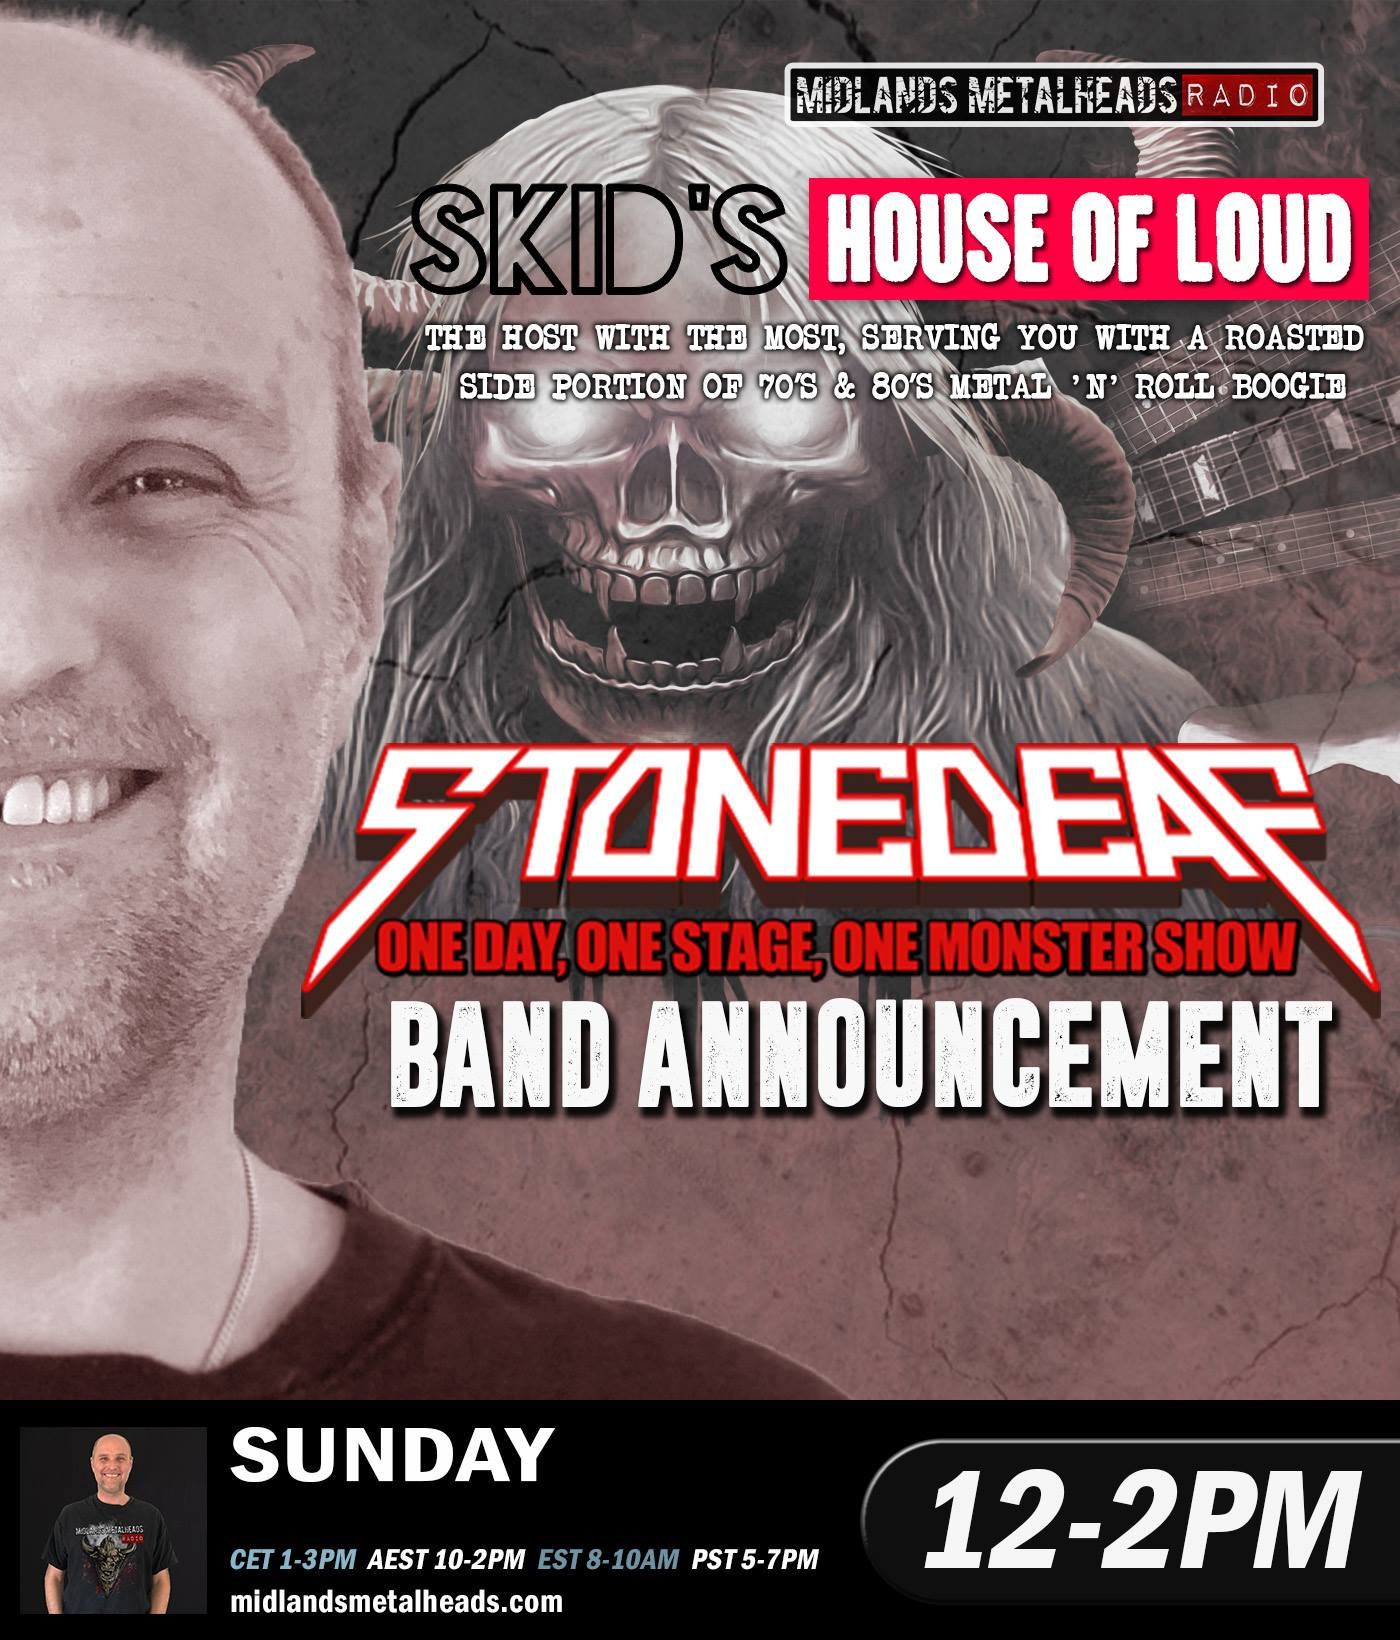 8 Pst To Aest skid's house of loud 25.11.18